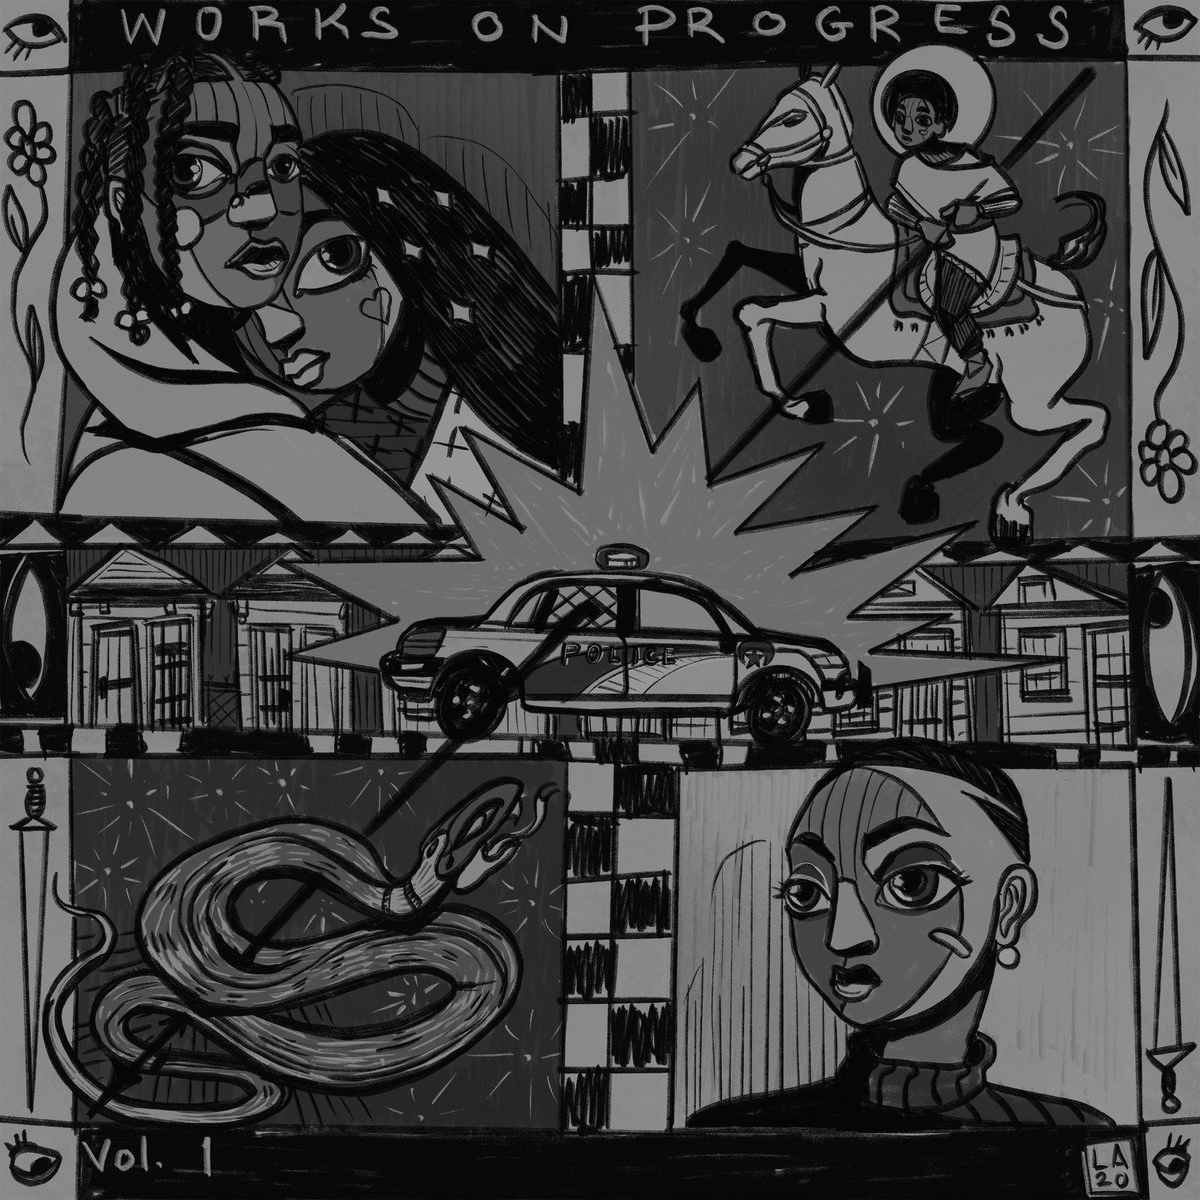 """Album cover for Works on Progress Vol. 1 by various artists. It's a grayscale illustration of 5 different scenes in a mosaic style in different quadrants of the frame. The top left quadrant has 2 dark-skinned people looking at the frame, one leaning on the other. The top right quadrant has a dark-skinned person on a white horse, with the sun behind them. The bottom left quadrant has a snake hissing. The bottom right quadrant has a dark-skinned person wearing a turtleneck looking to the left of the screen. There's a rectangle separating the top quadrants from the bottom quadrants, and in that spaces there's a cop car driving in front of a row of houses, with jagged lines surrounding it that symbolize sirens. At the top reads """"Works on Progress"""" and in the bottom left corner reads 'Vol. 1"""" Cover Art by Langston Allston."""